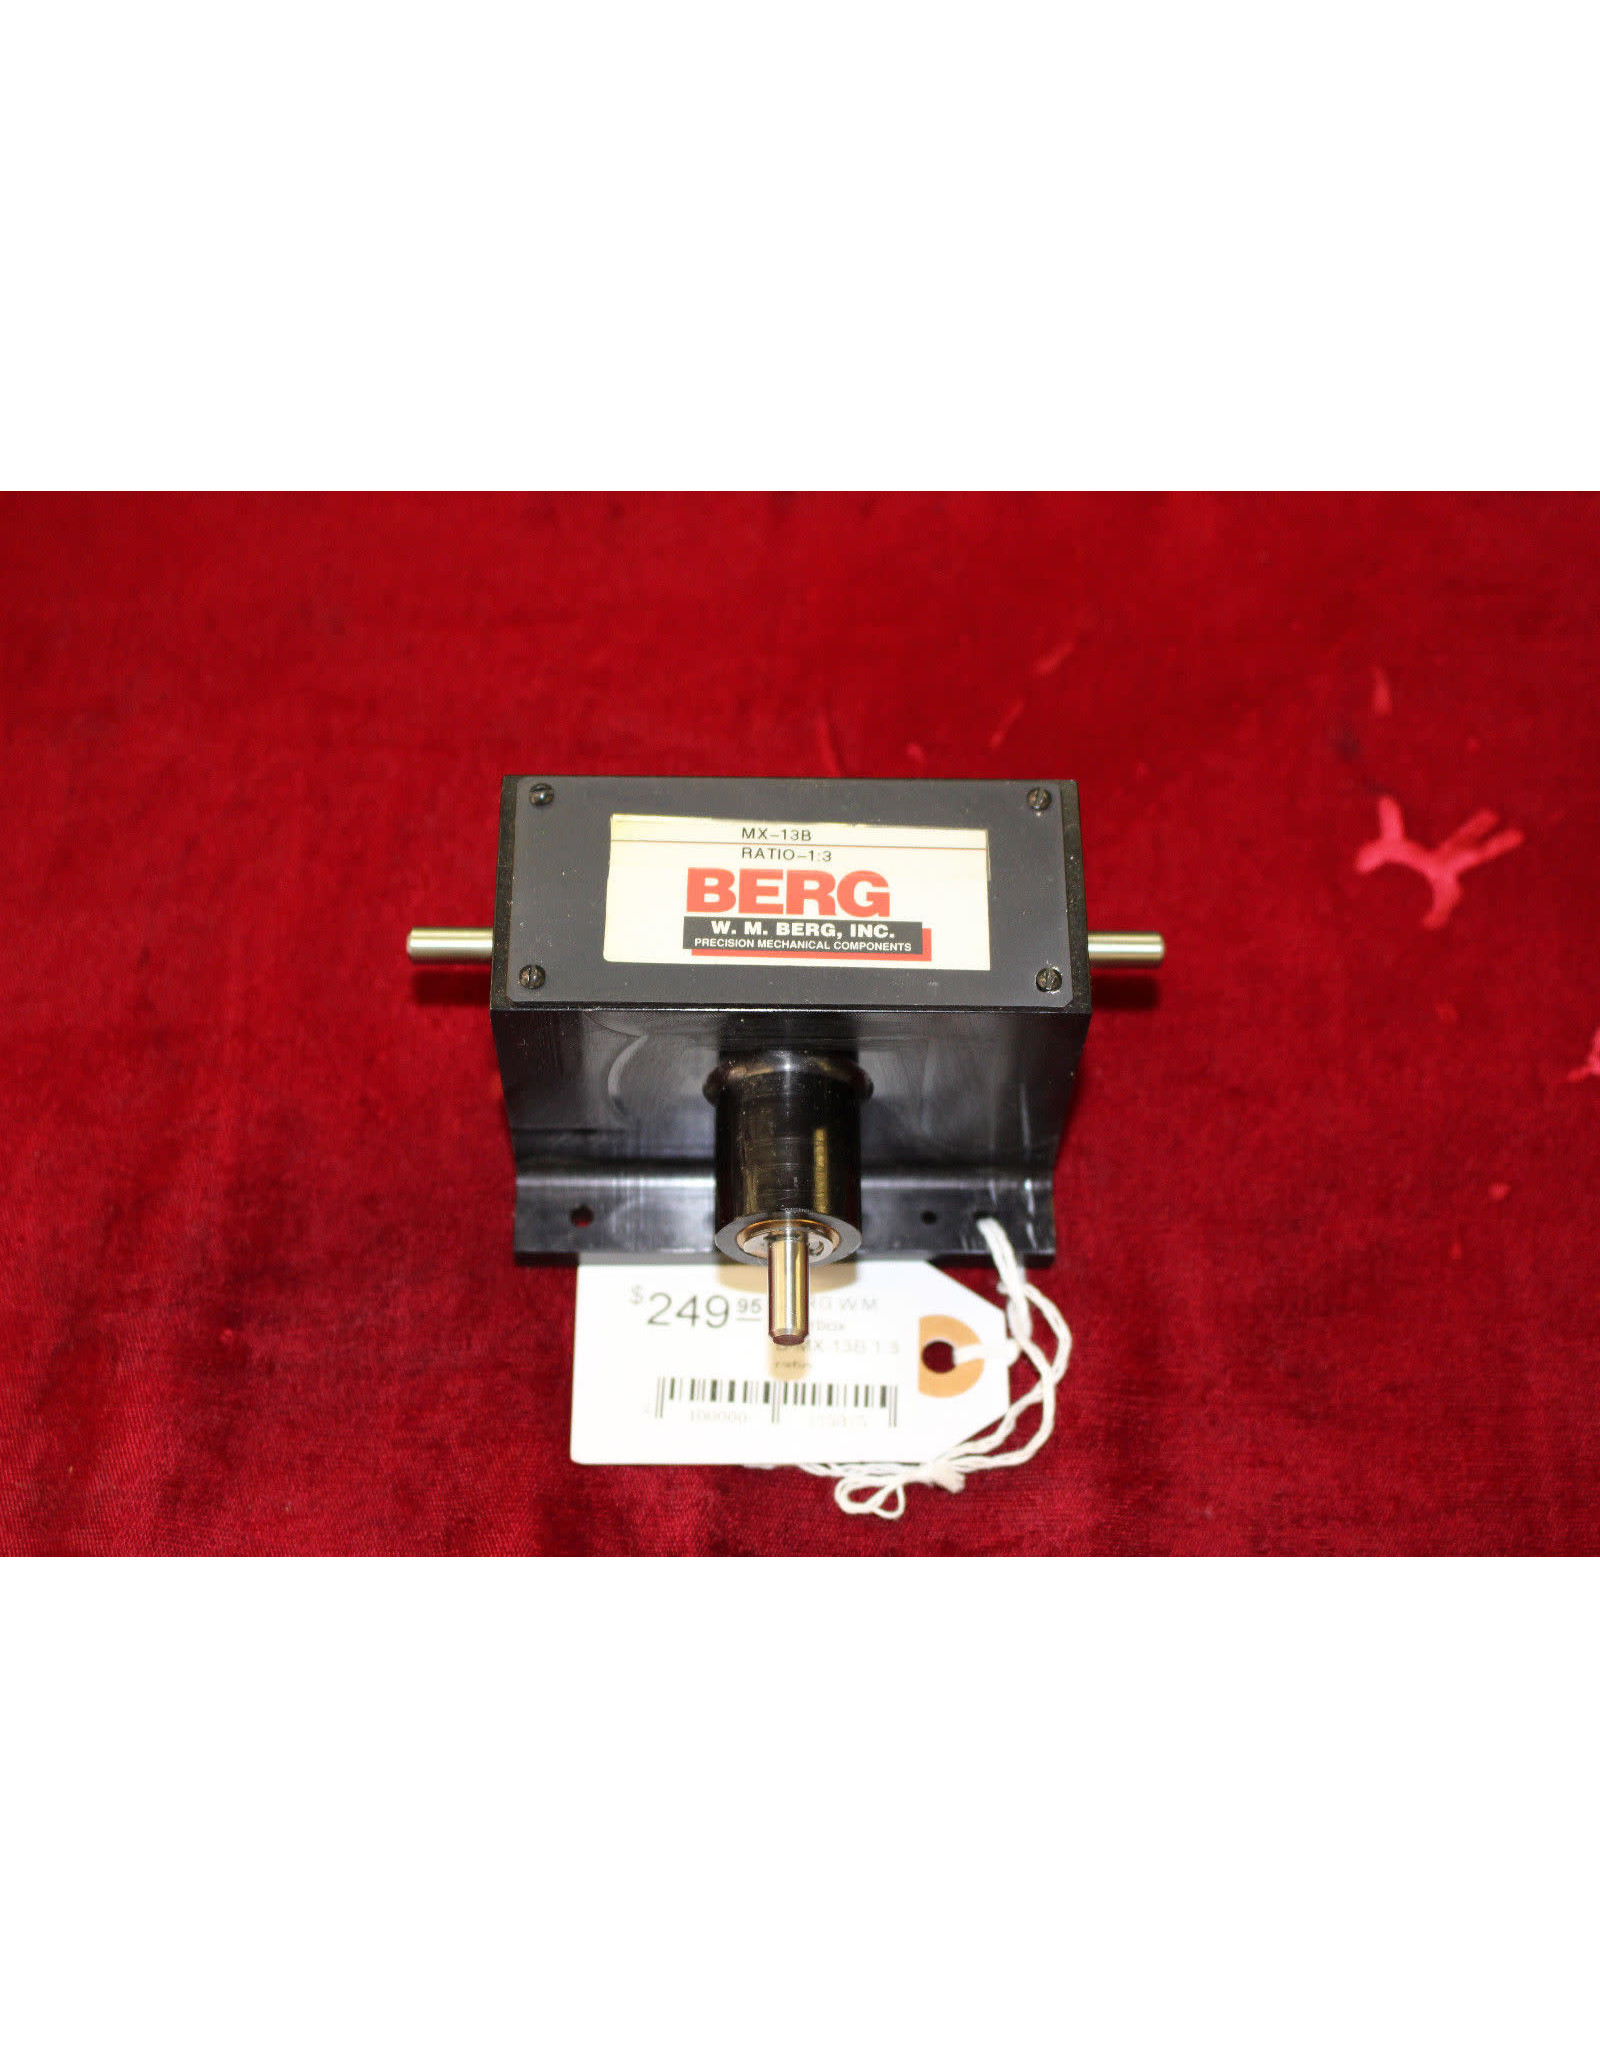 BERG W.M gearbox B-MX-13B 1:3 ratio